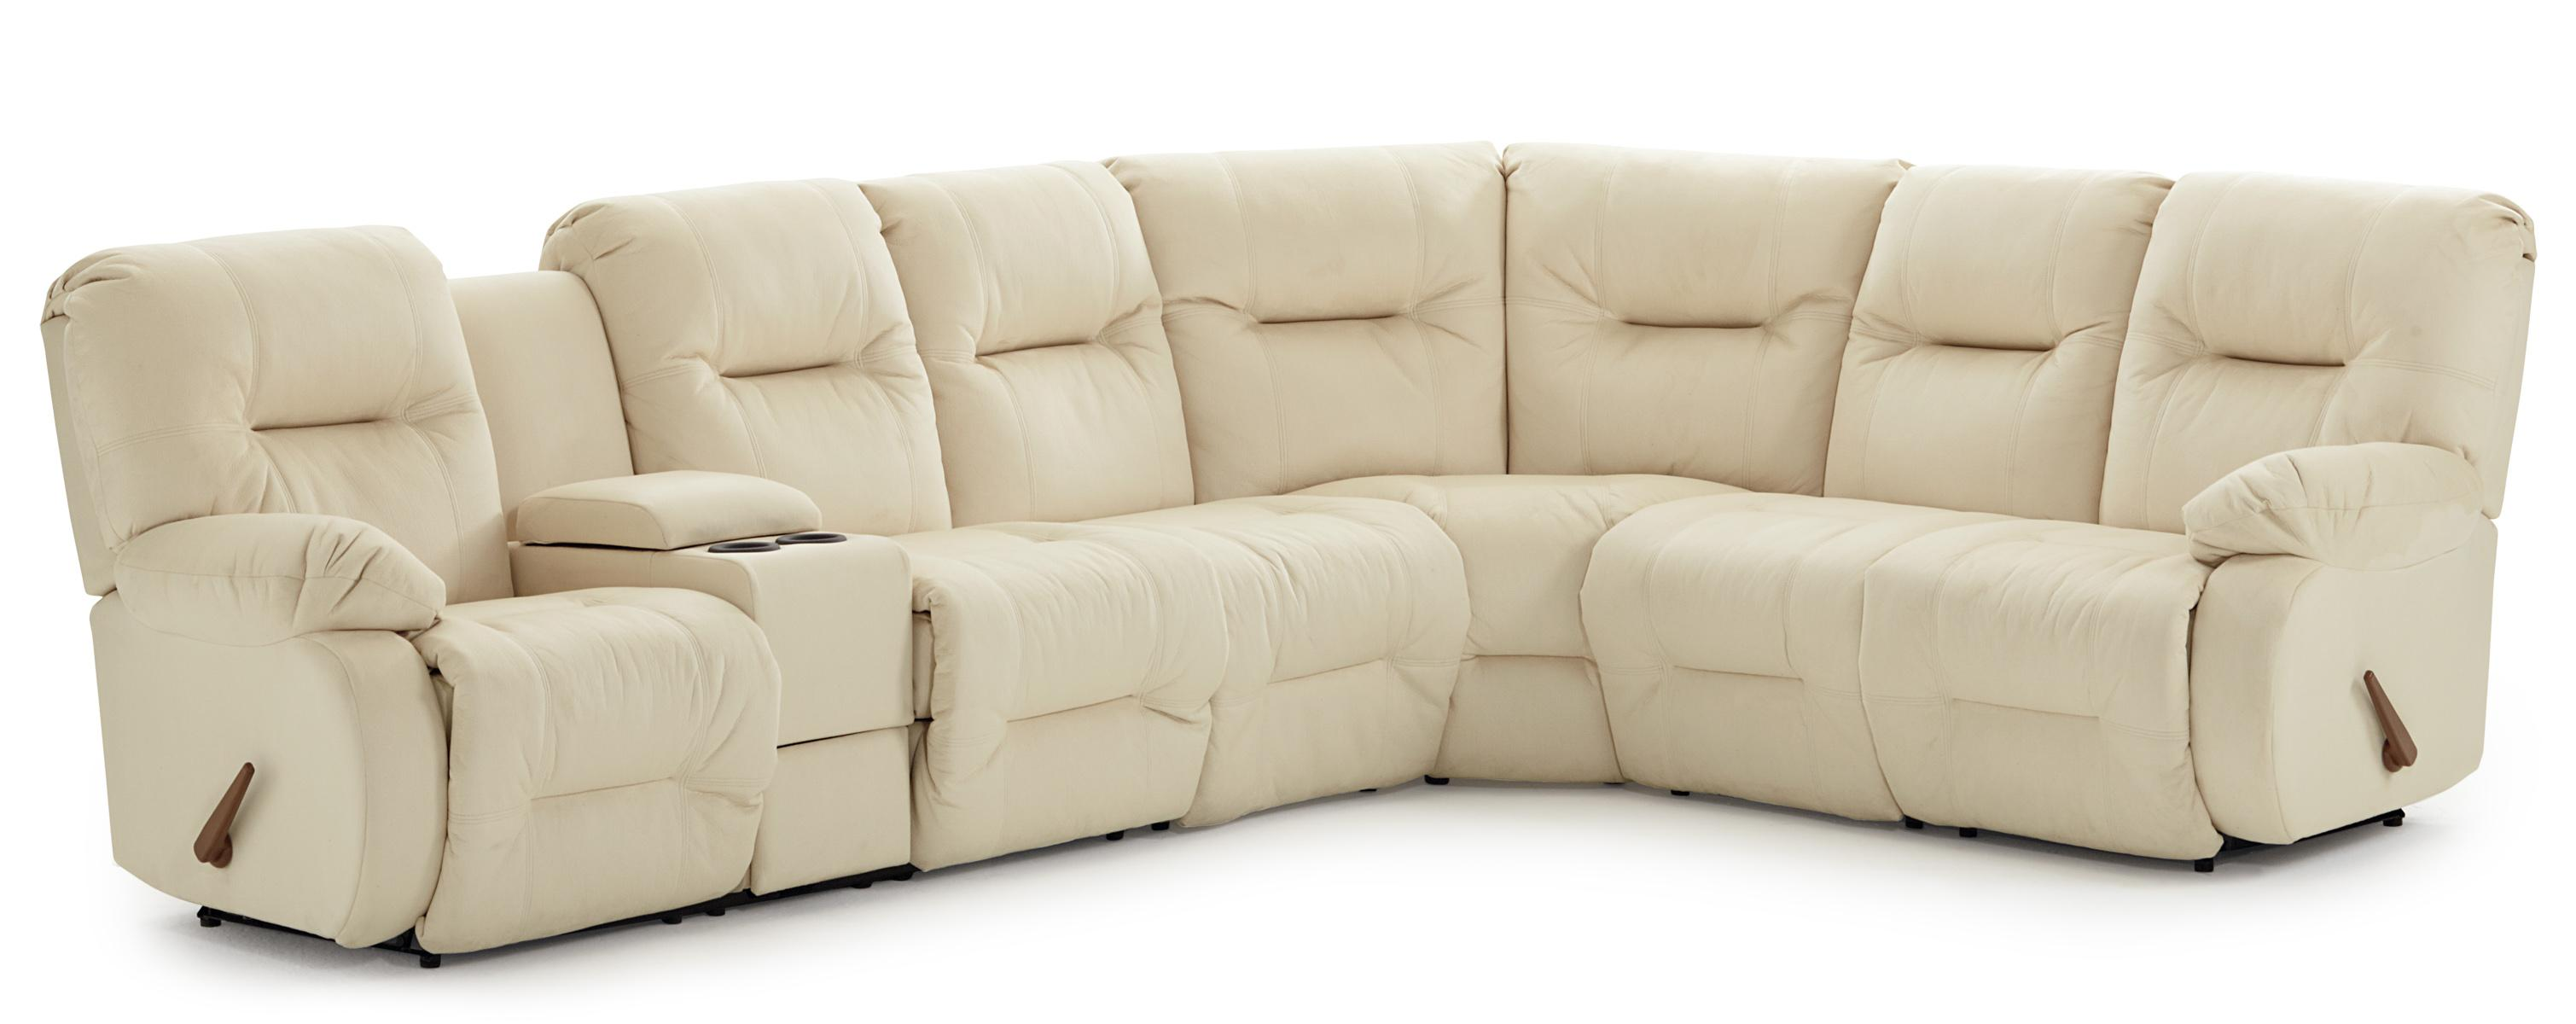 Brinley 2 Power Reclining Sectional Sofa by Best Home Furnishings at Best Home Furnishings